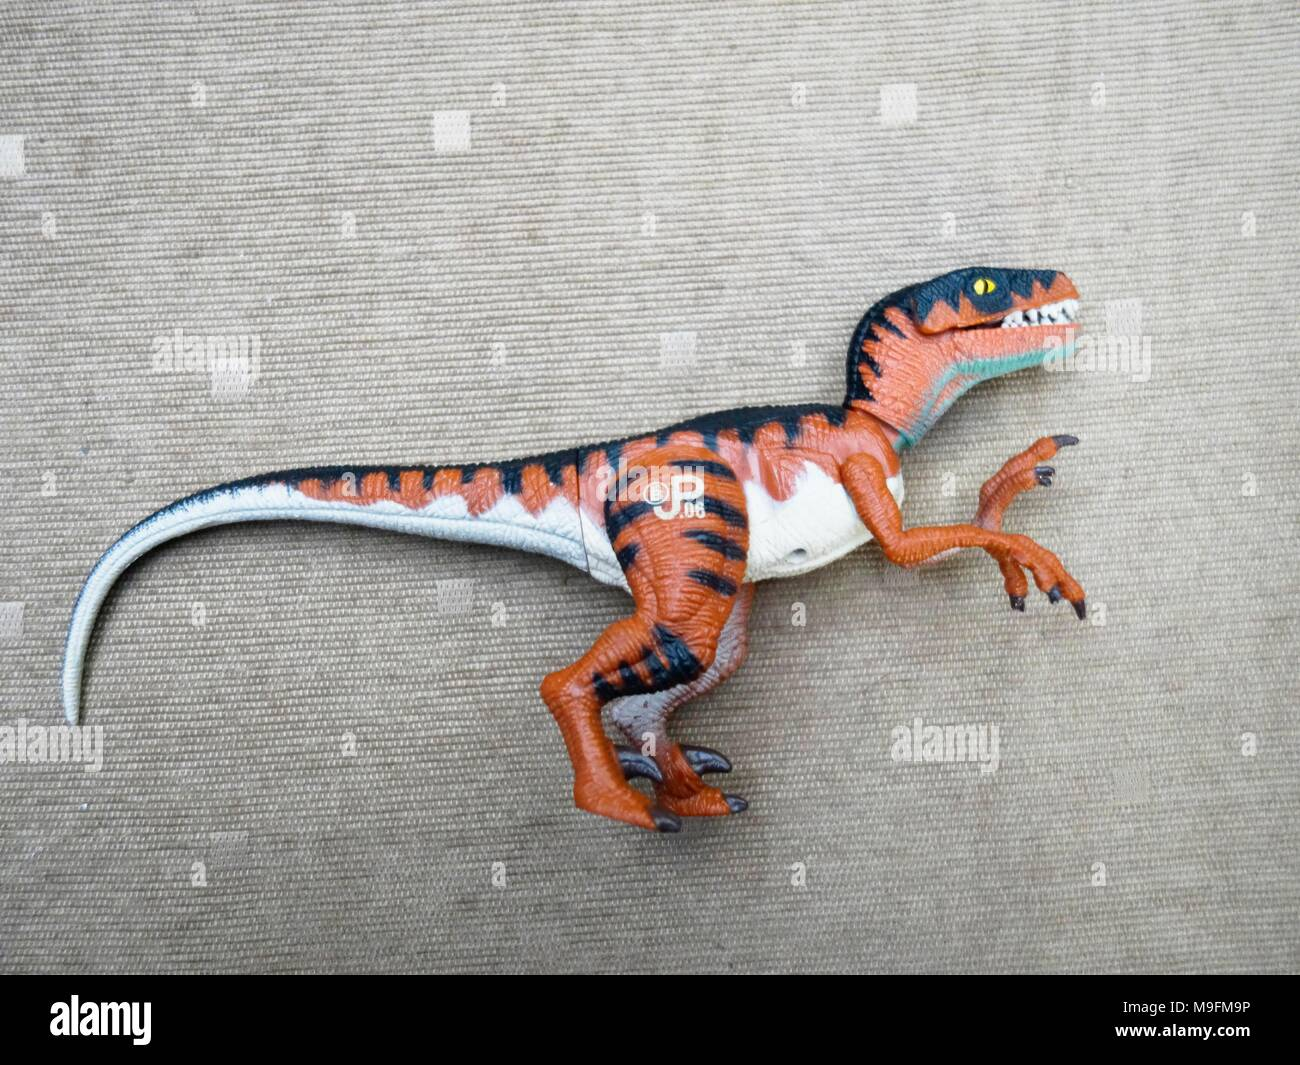 Jurassic Park action figure from Kenner - Stock Image